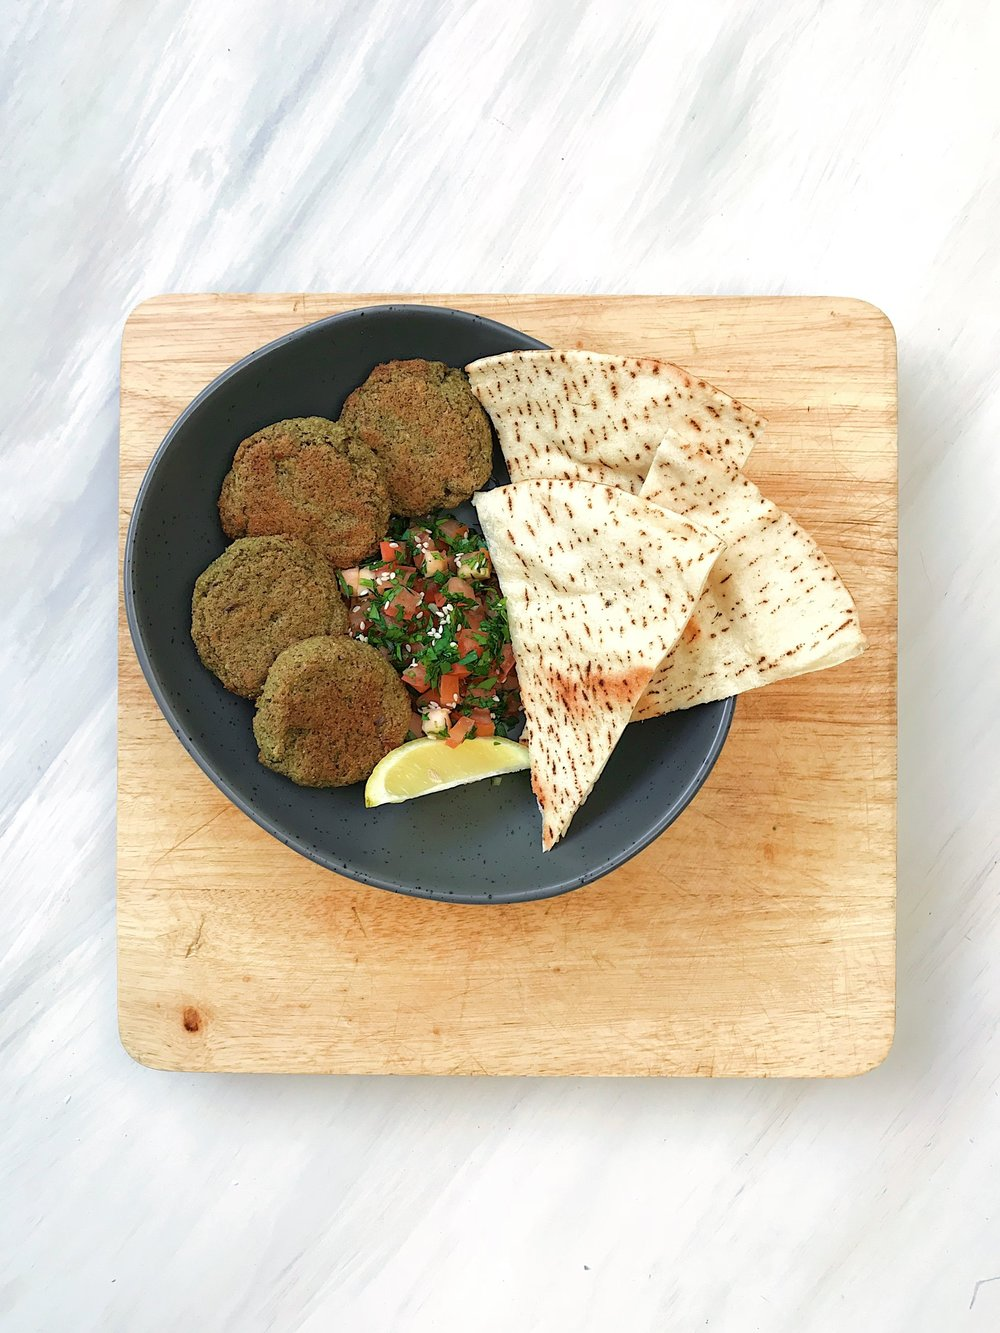 Vegan Teff Falafels by Outback Harvest